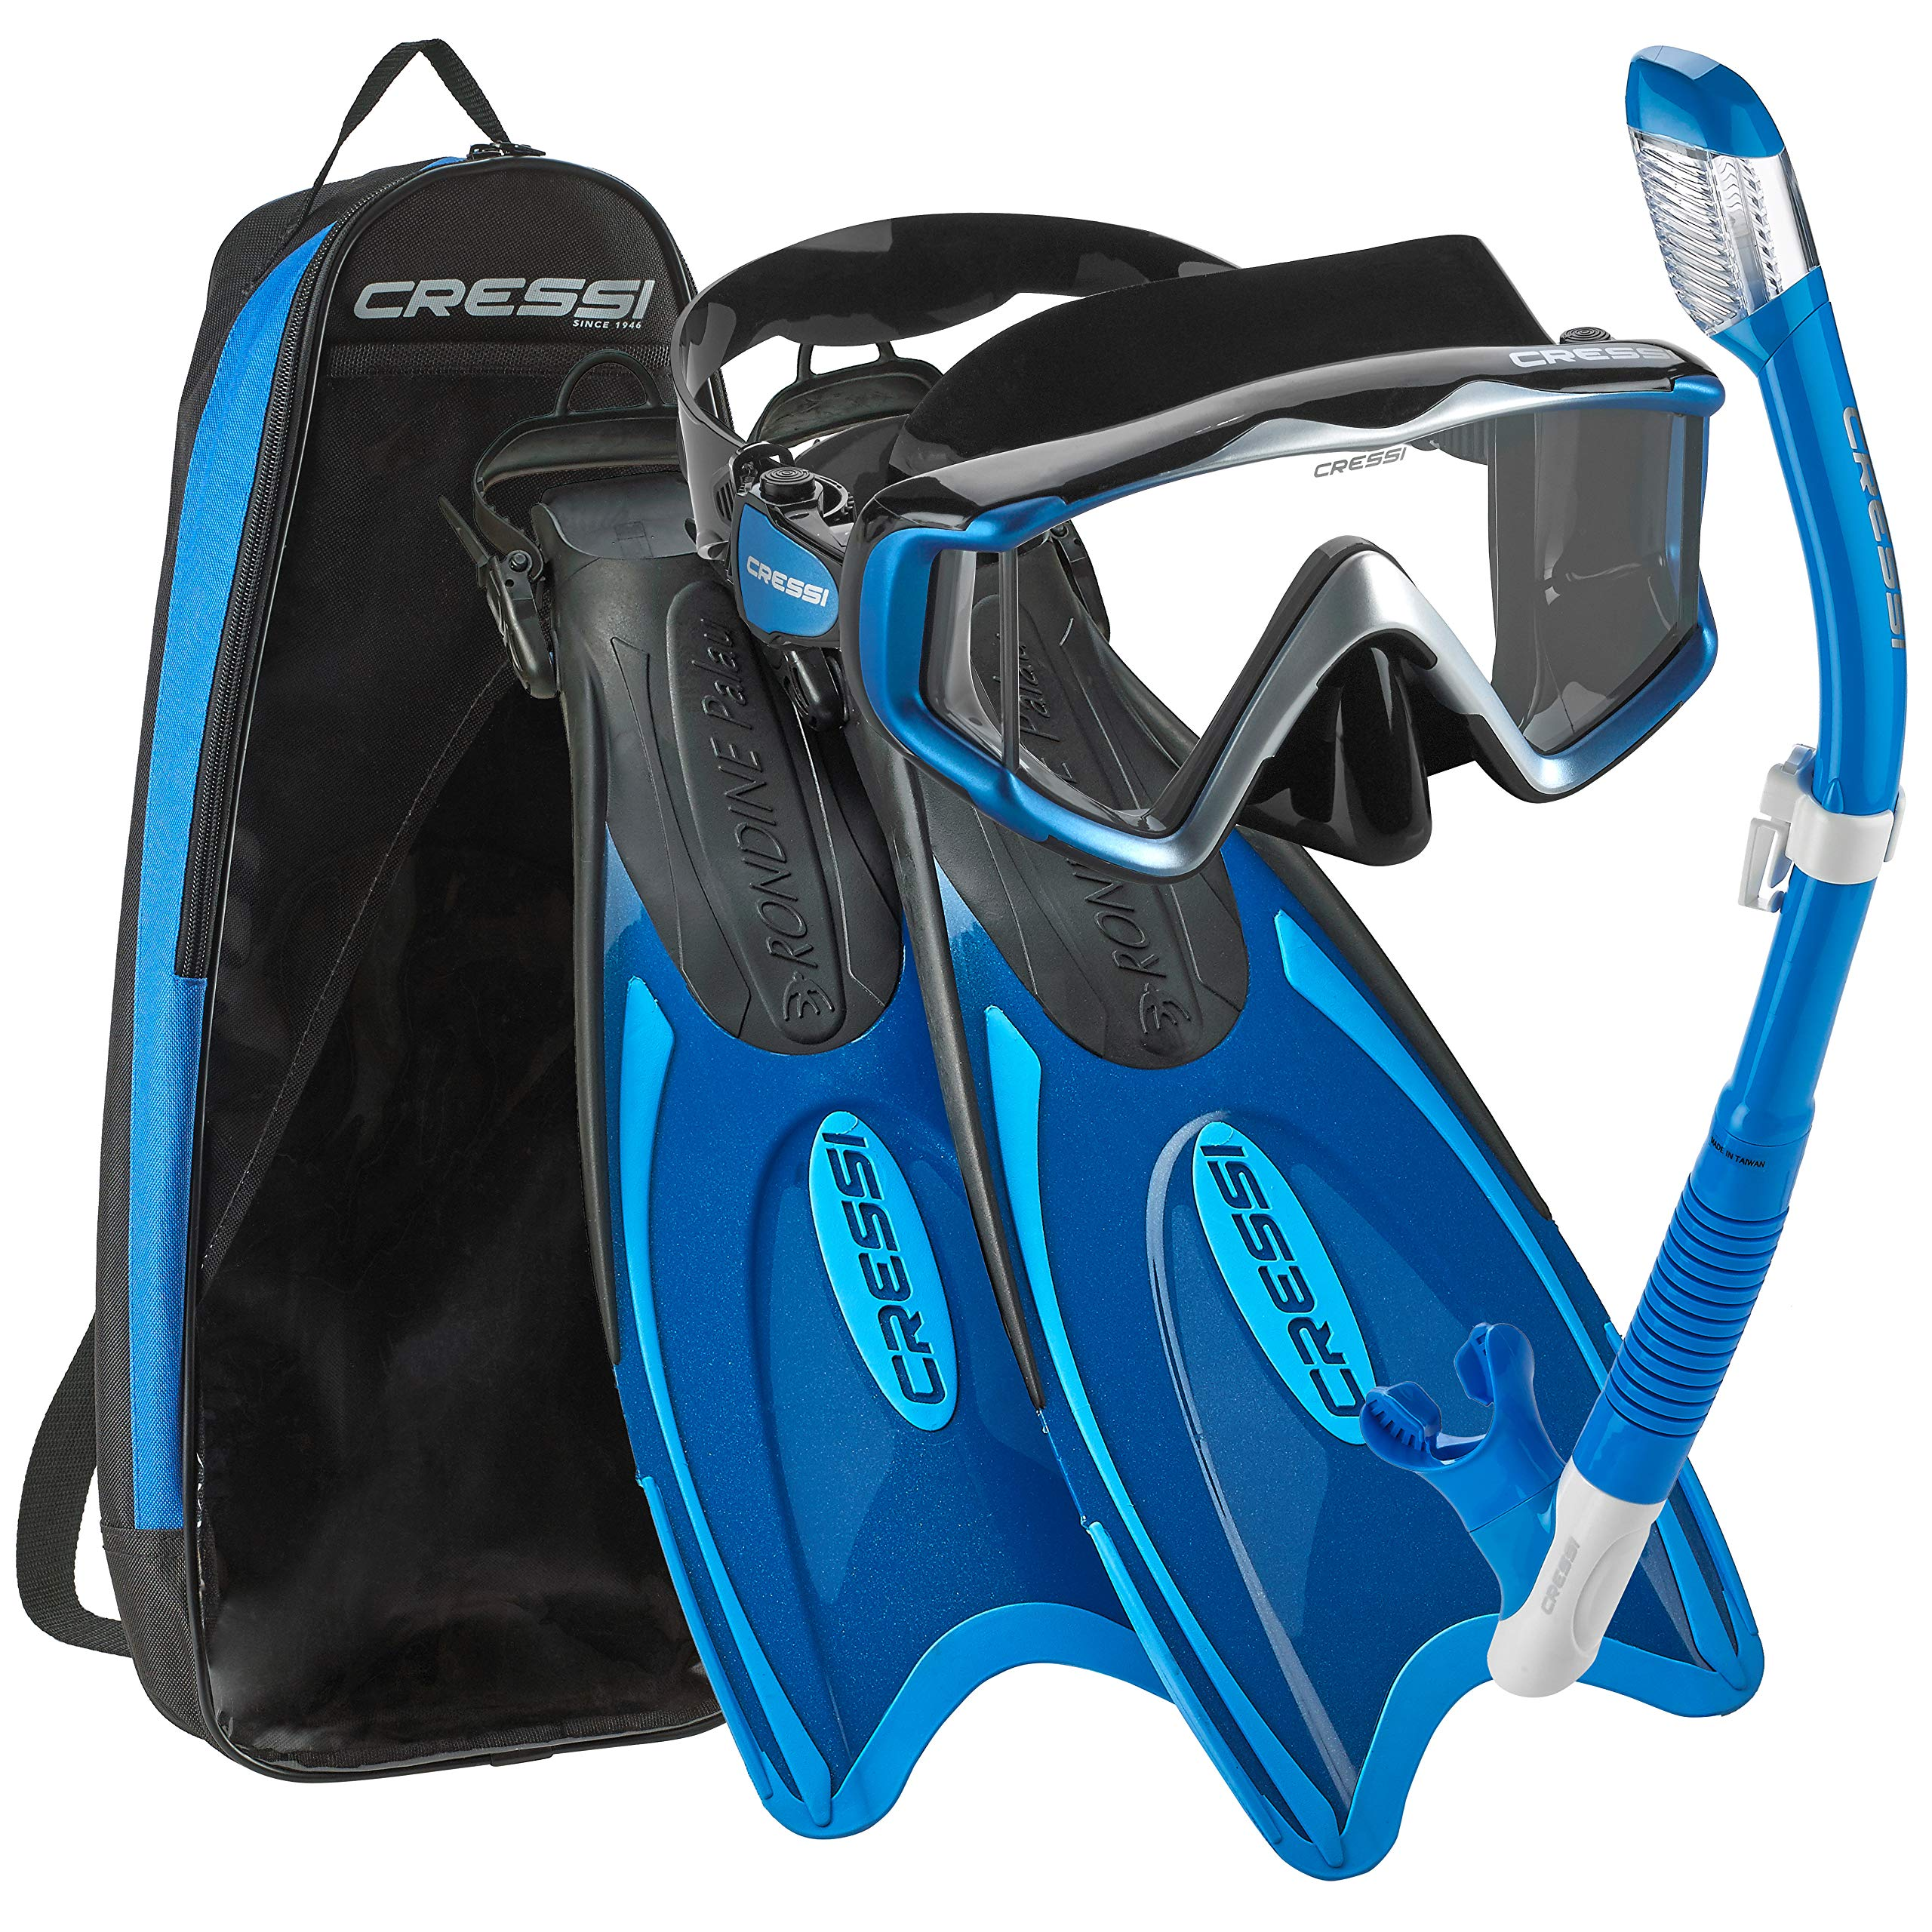 Cressi Palau Traveling Premium Snorkel Set, Panoramic Wide View Adult Diving Snorkeling Mask, Desert Dry Snorkel, Adjustable Fins, Travel Gear Bag - Metallic Blue - X-Small/Small by Cressi